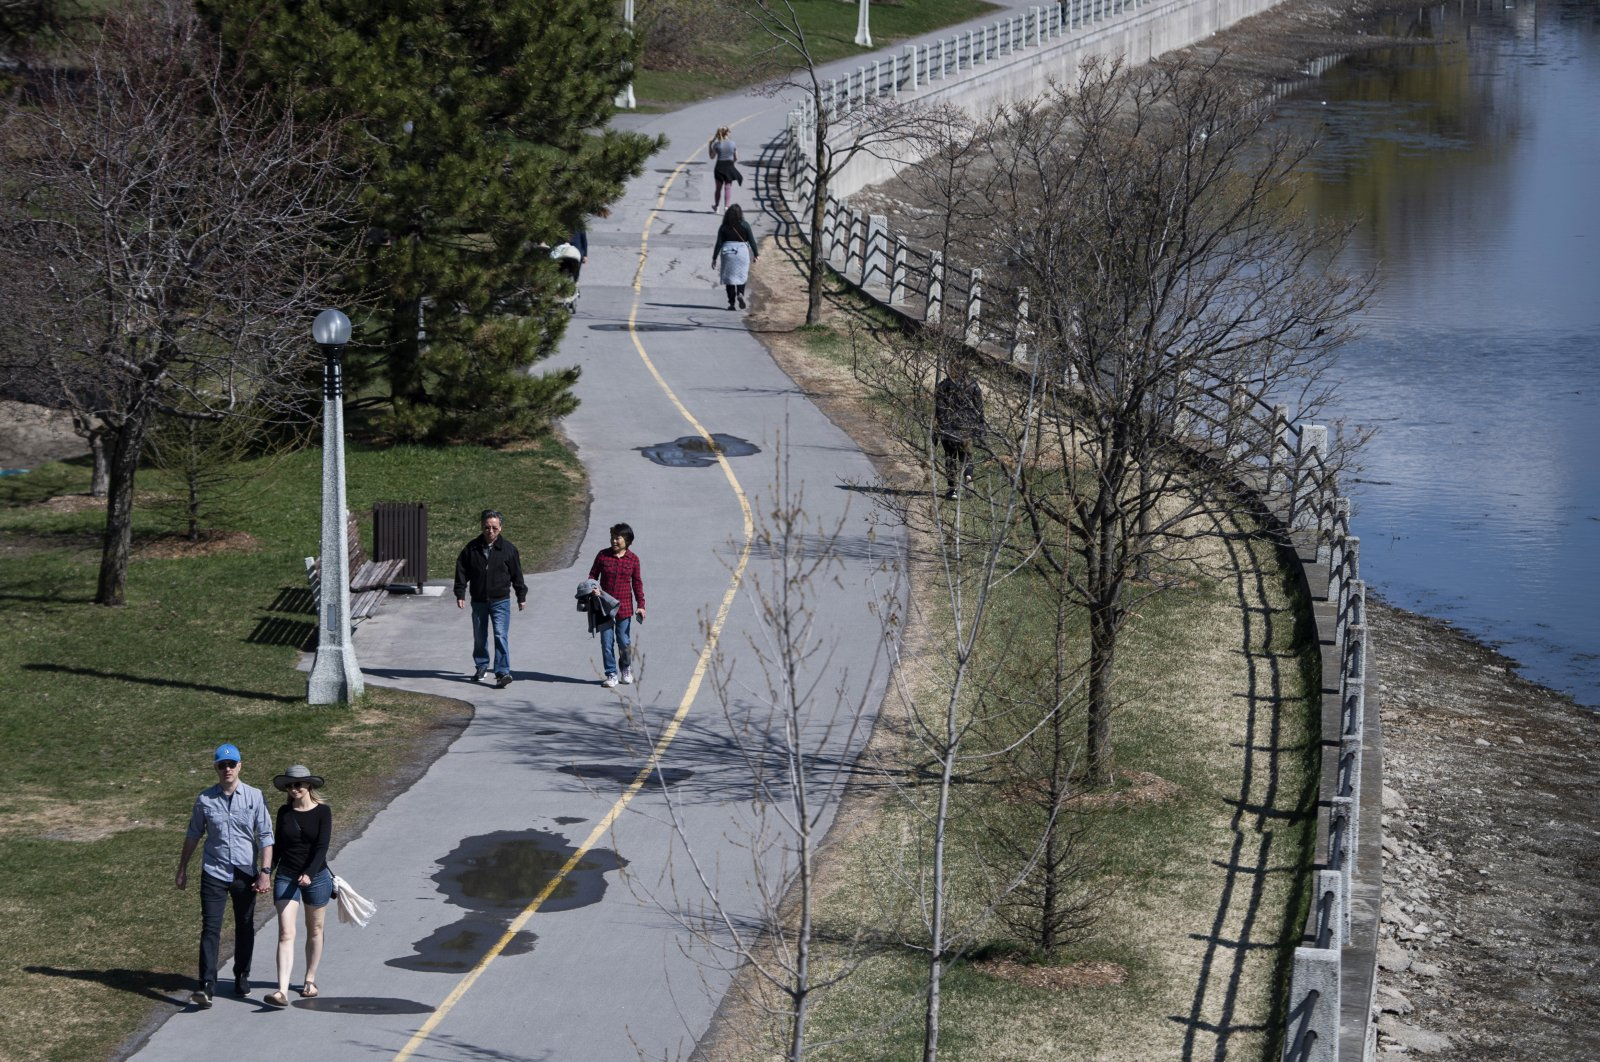 People walking along the Rideau Canal Western Pathway take advantage of warm weather in the midst of the COVID-19 pandemic, in Ottawa on May 3, 2020. (AP Photo)